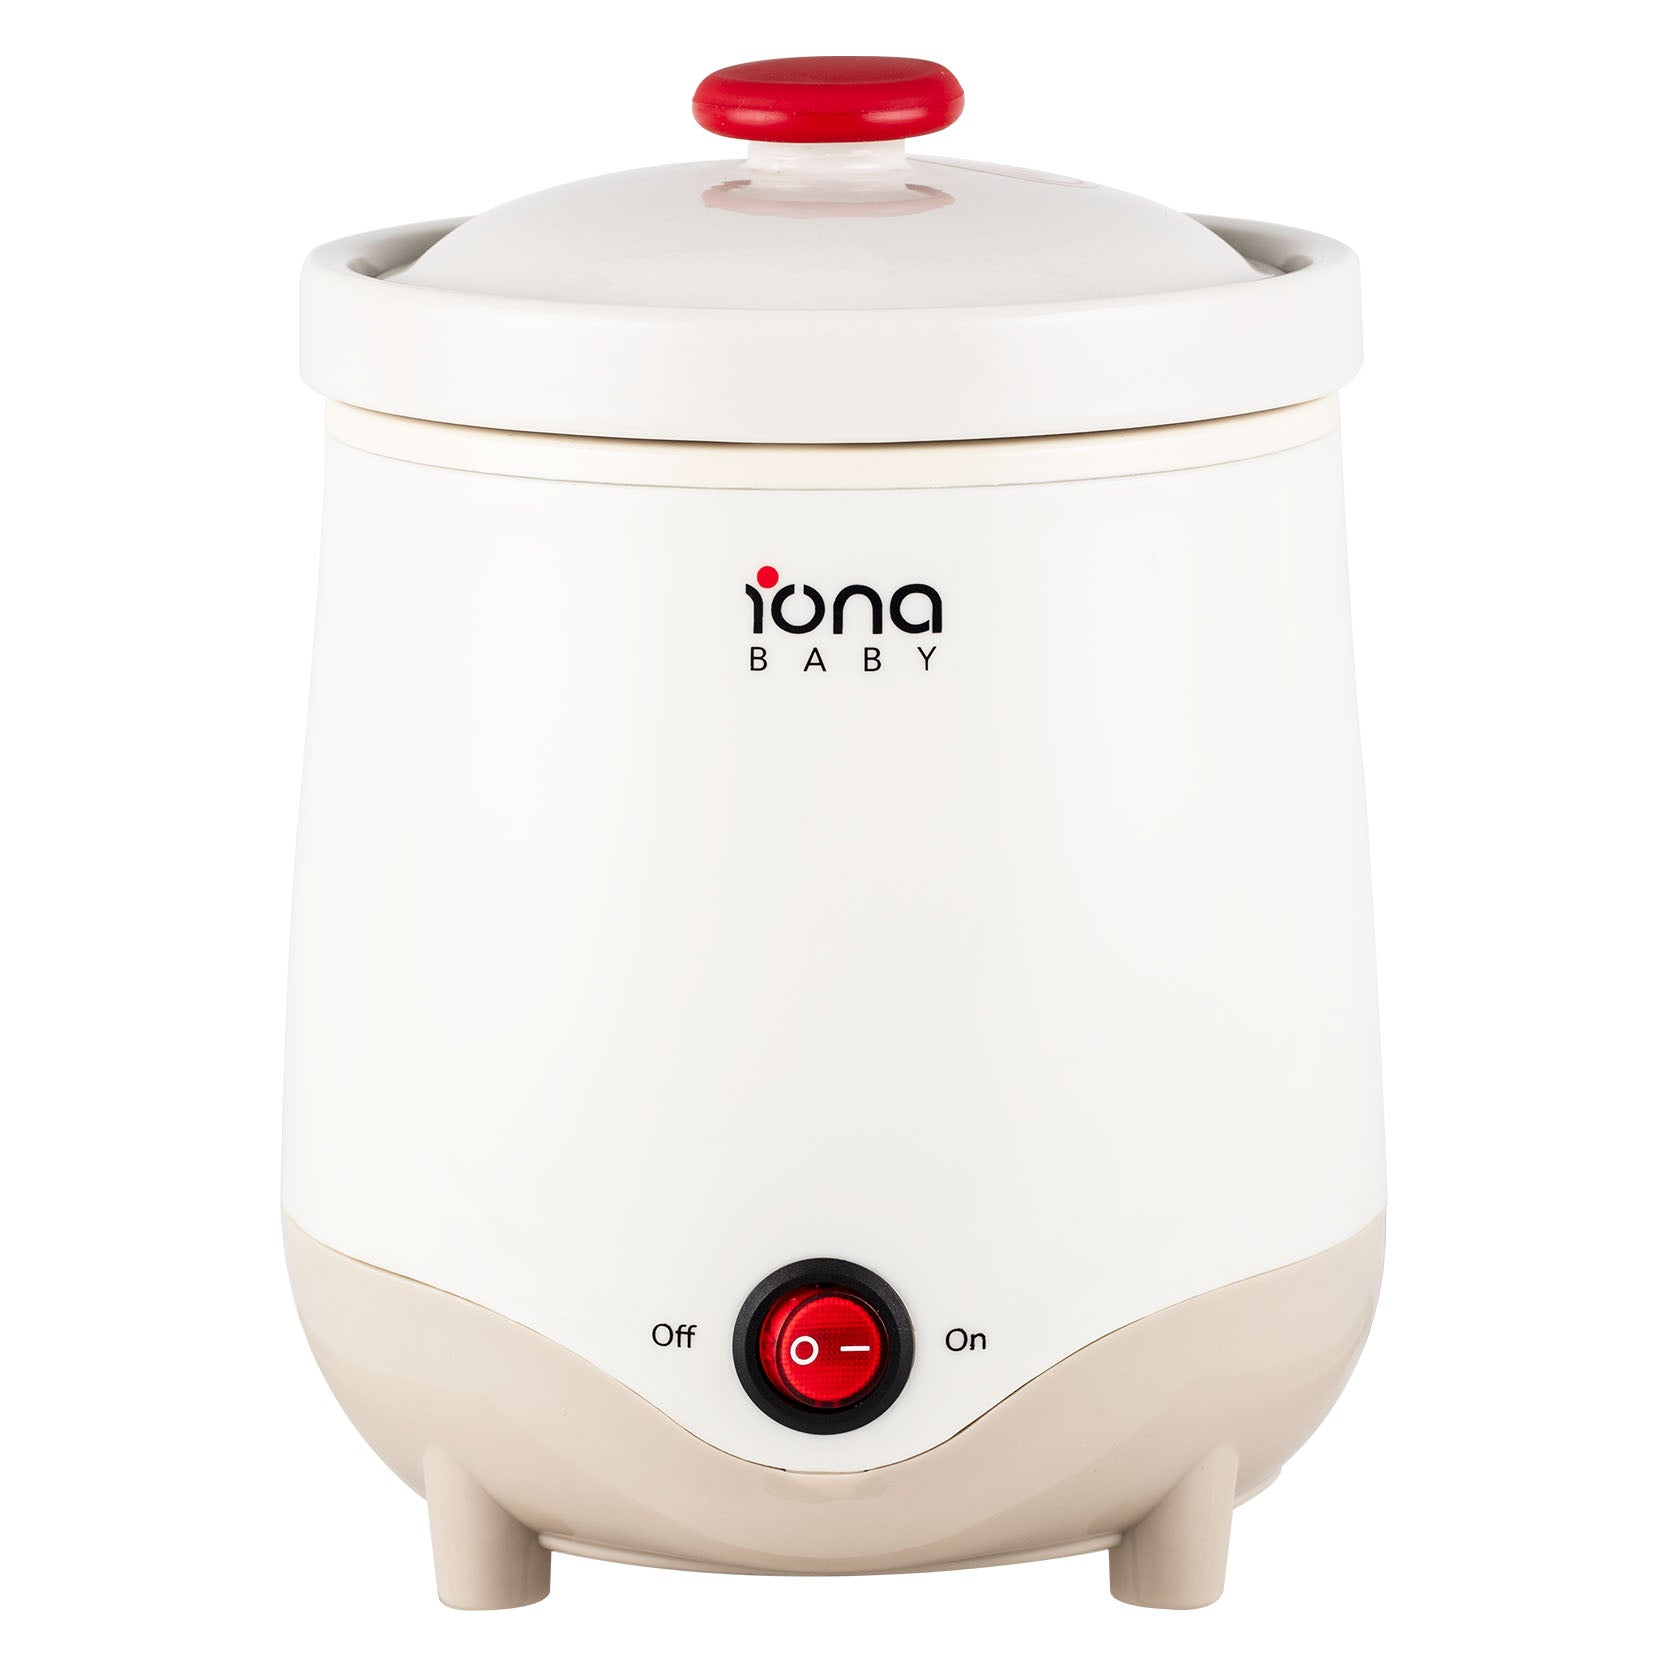 Iona 0.7L Slow Cooker - GLSC08